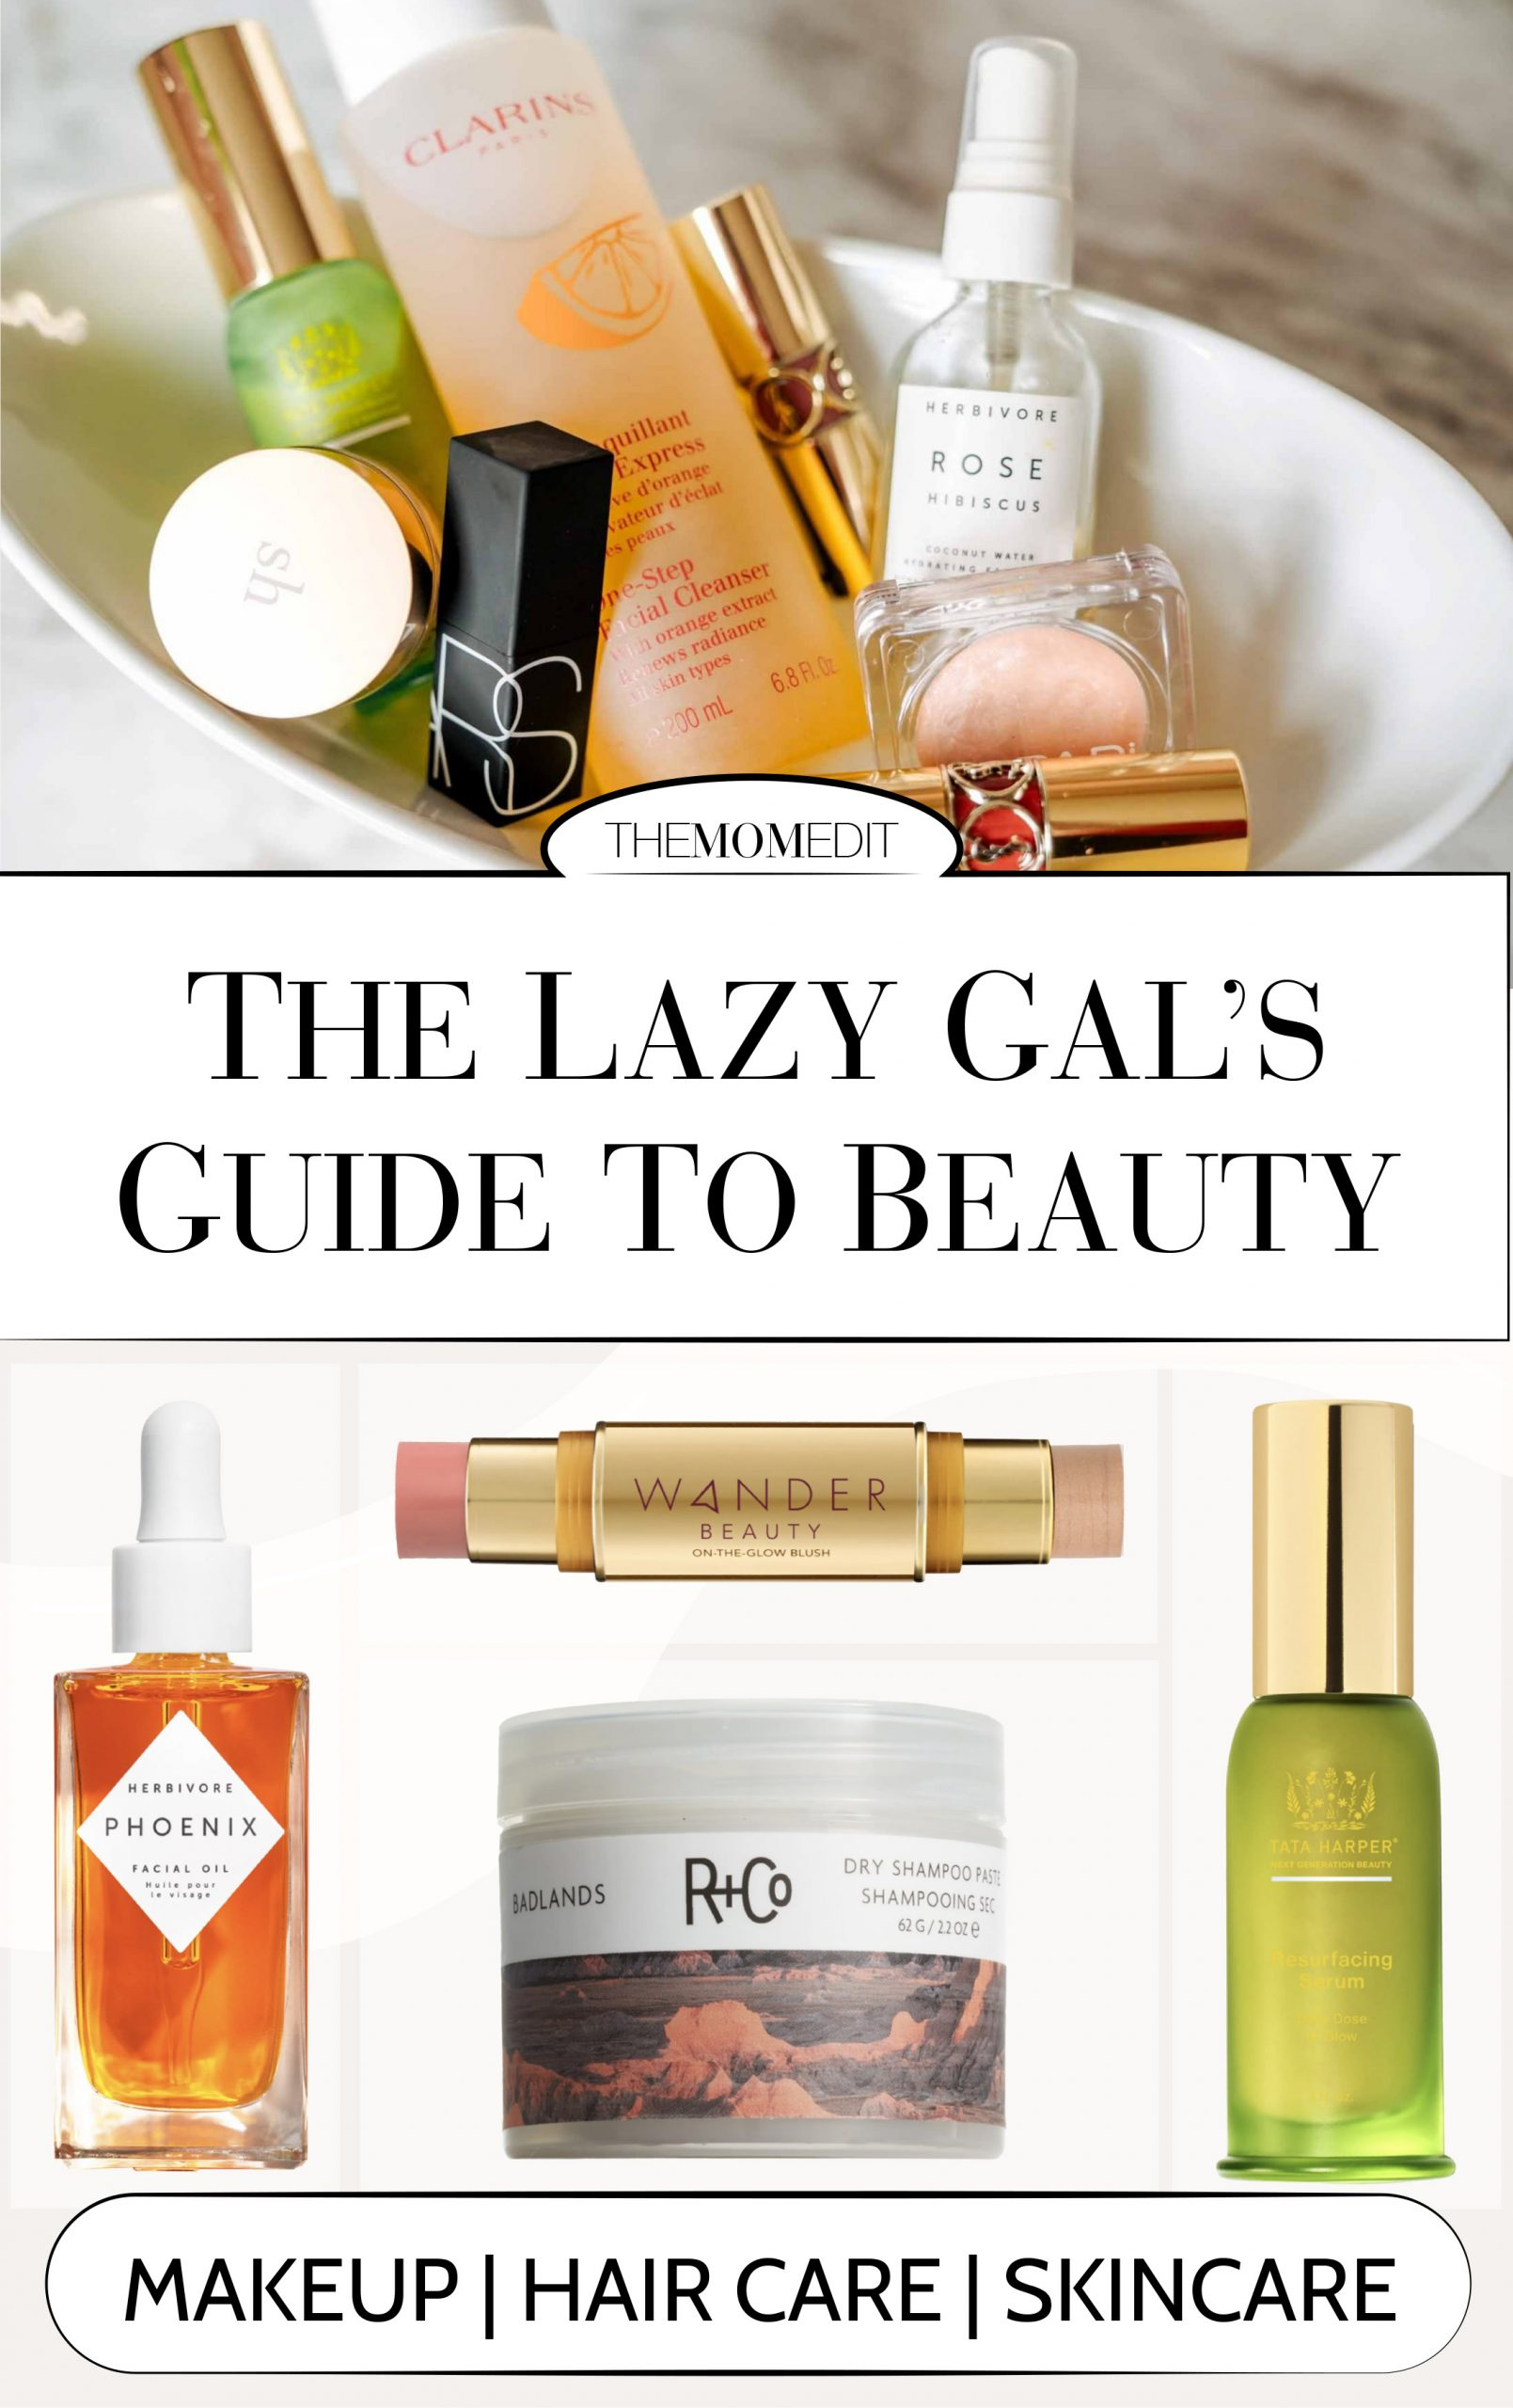 After years of taking care of my skin, makeup & hair, I've found all the products that, for me, make my morning regimen & evening routine super quick + painless.